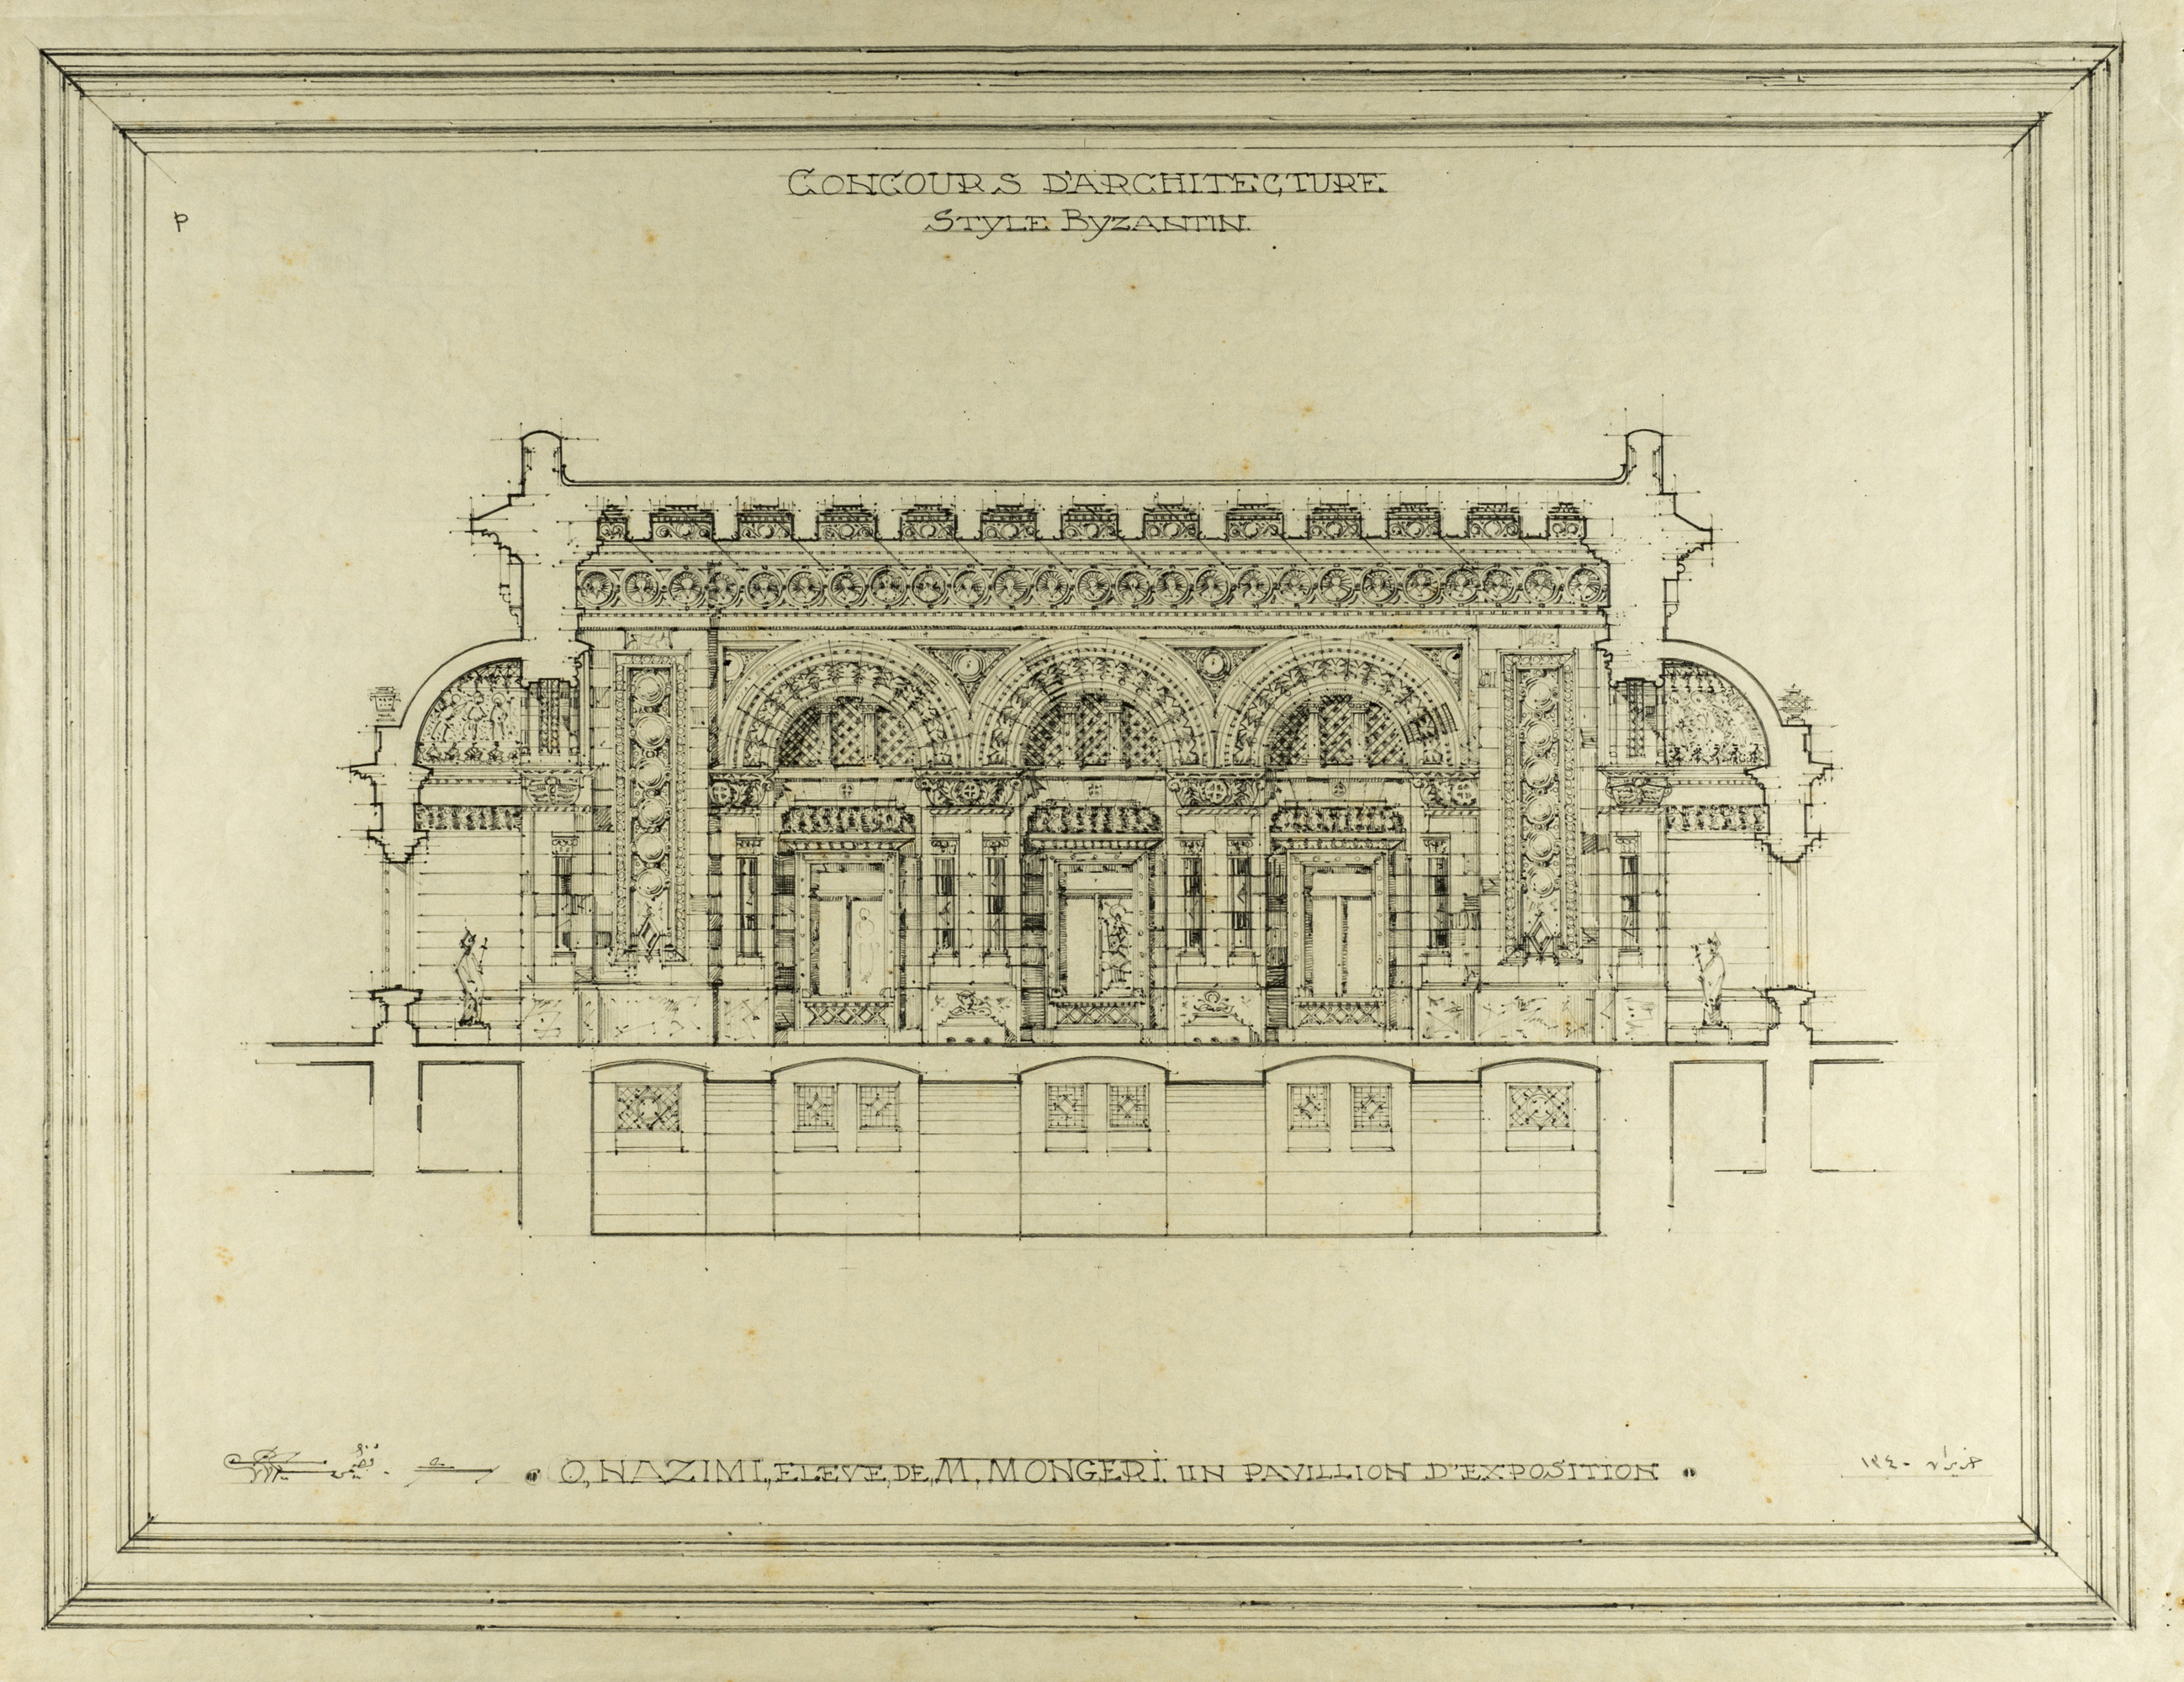 Façade of the fair pavilion designed in Byzantine style at the Mongeri studio,